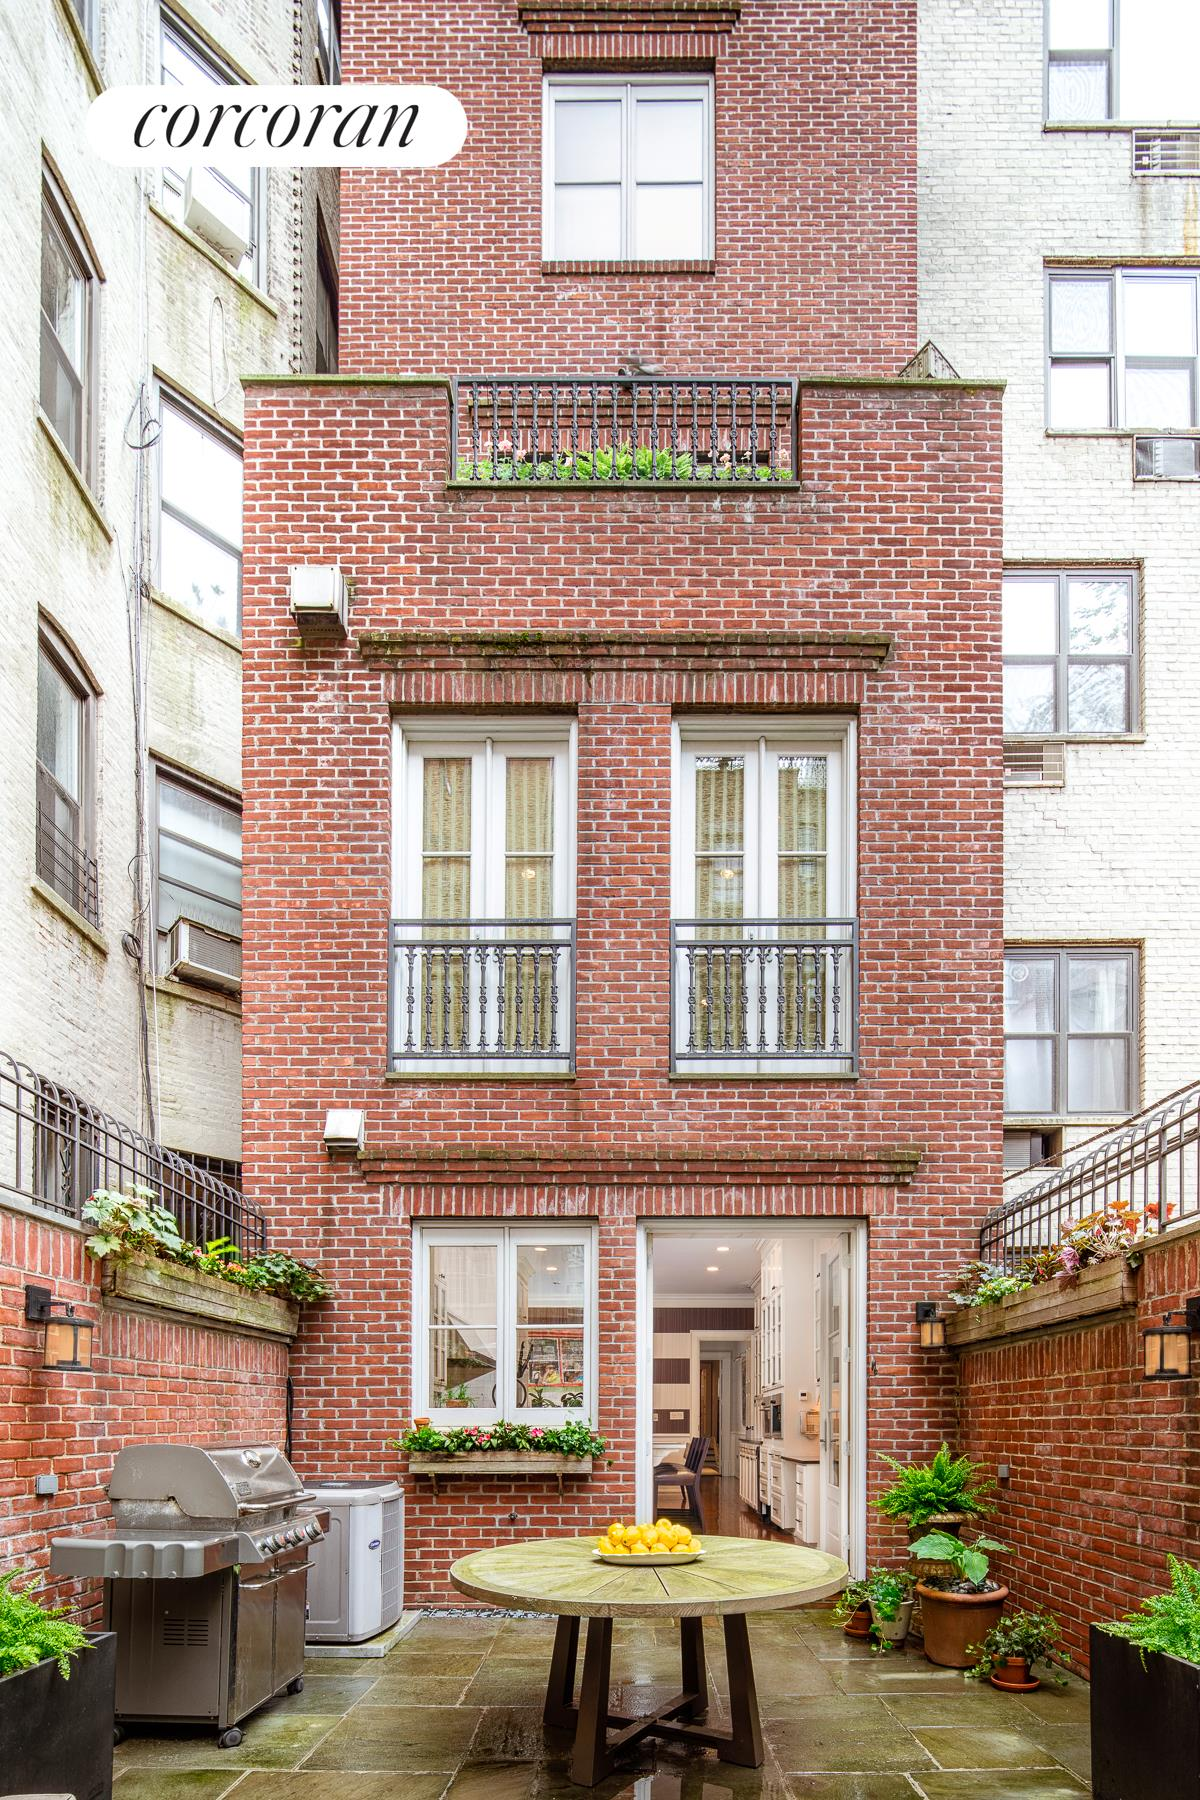 5 West 87th Street, Building Exterior